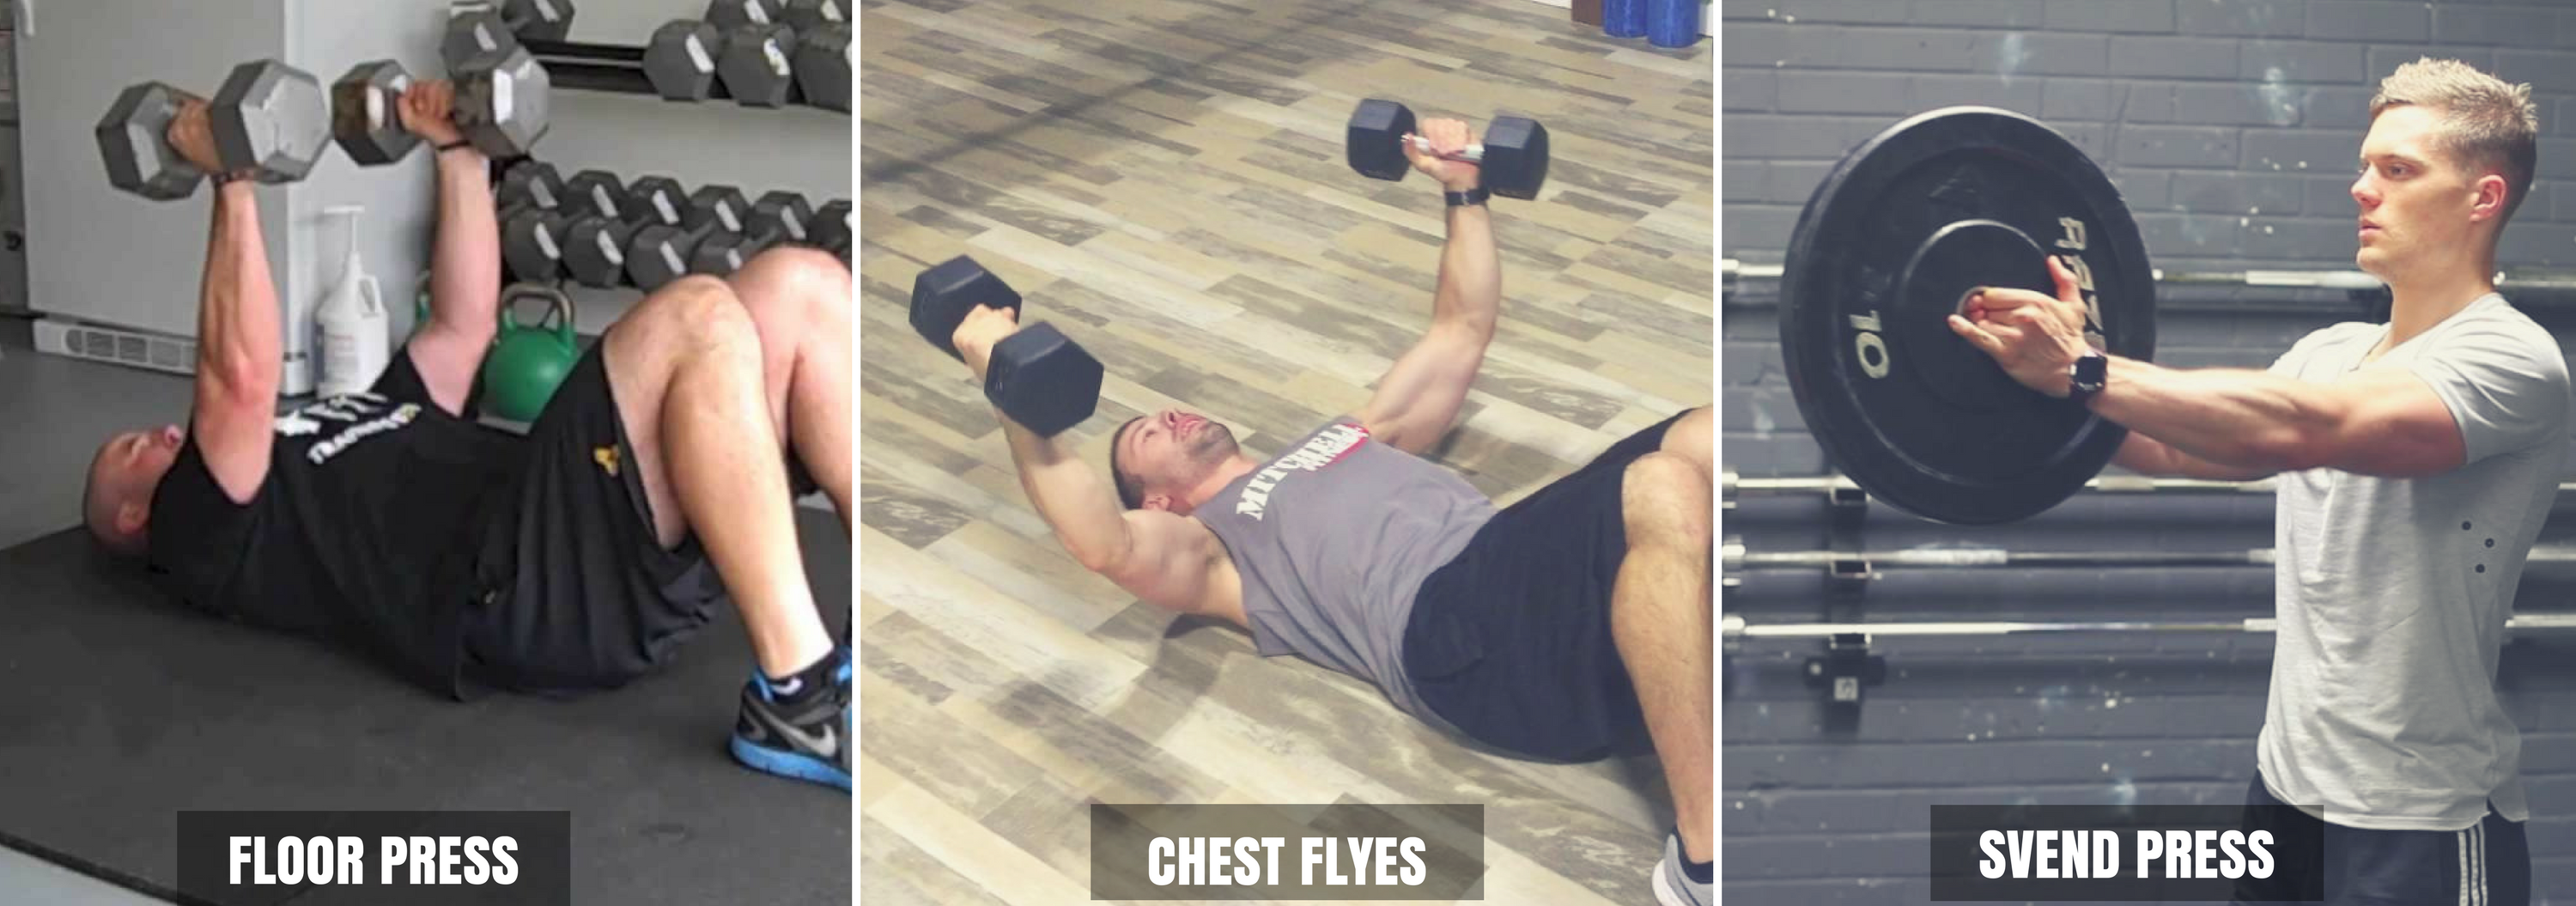 dumbbell exercises for chest